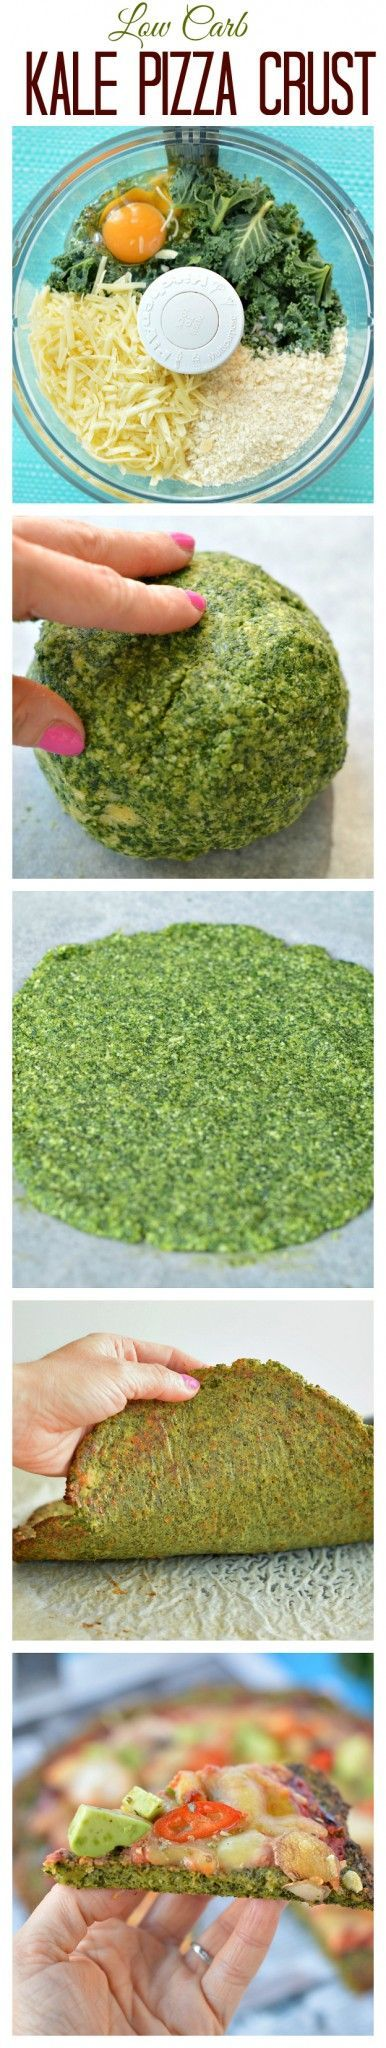 My fav Healthy Pizza Crust ! This Low Carb Kale Pizza Crust is made with only 5…